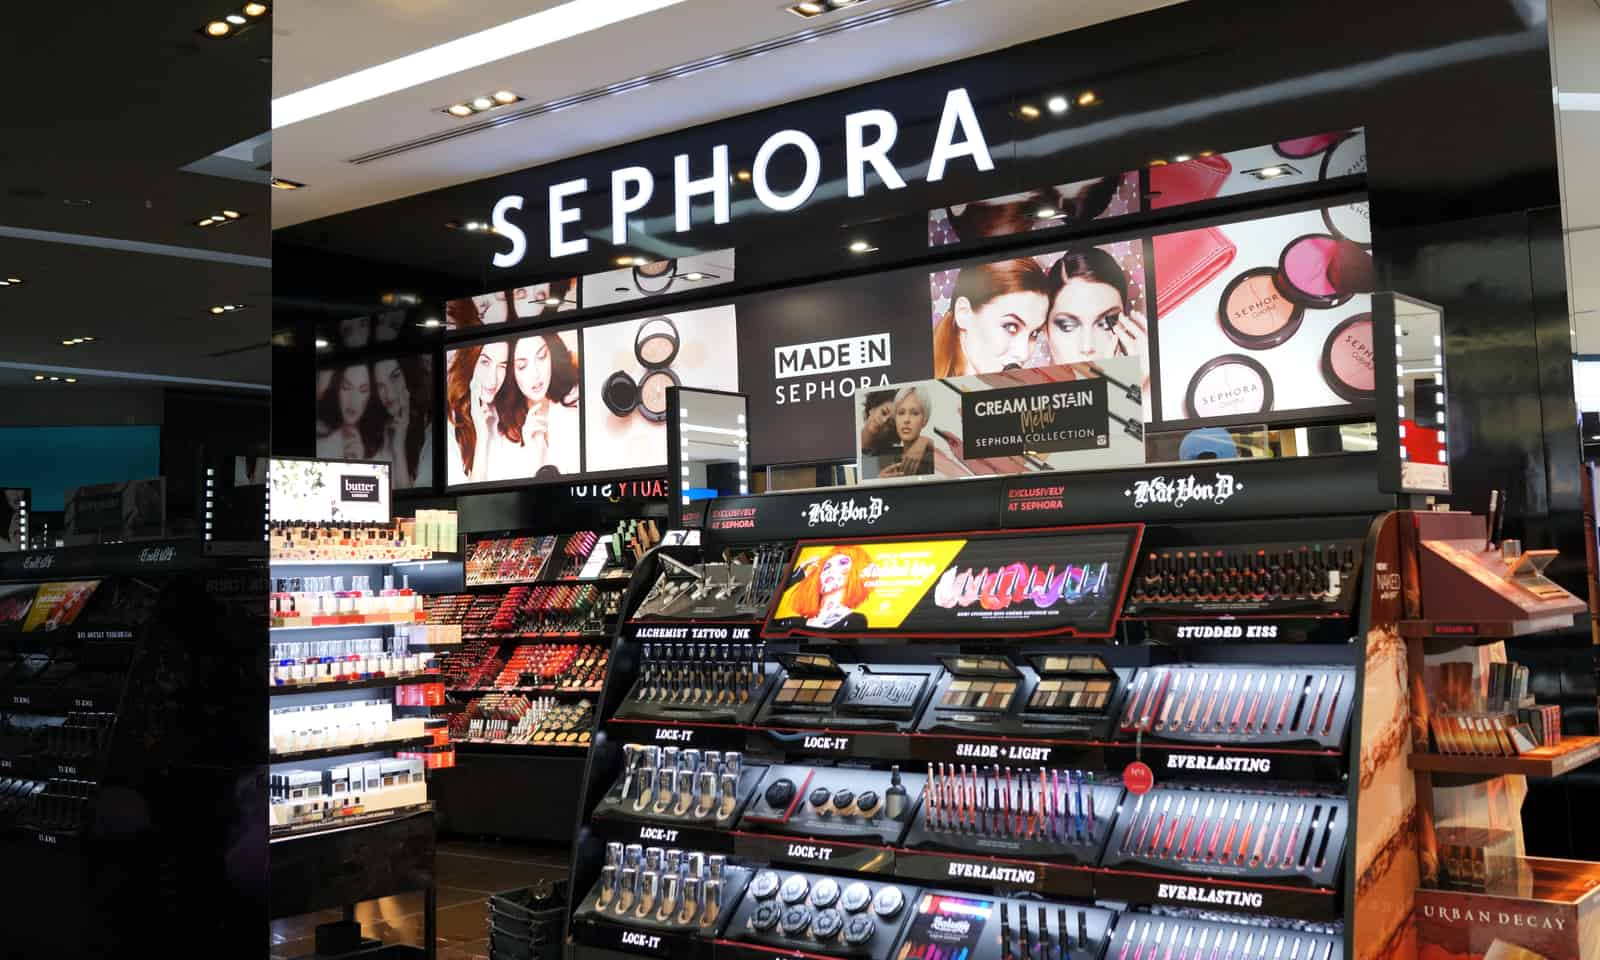 41-Cruelty-Free-Brands-Youll-Find-at-Sephora